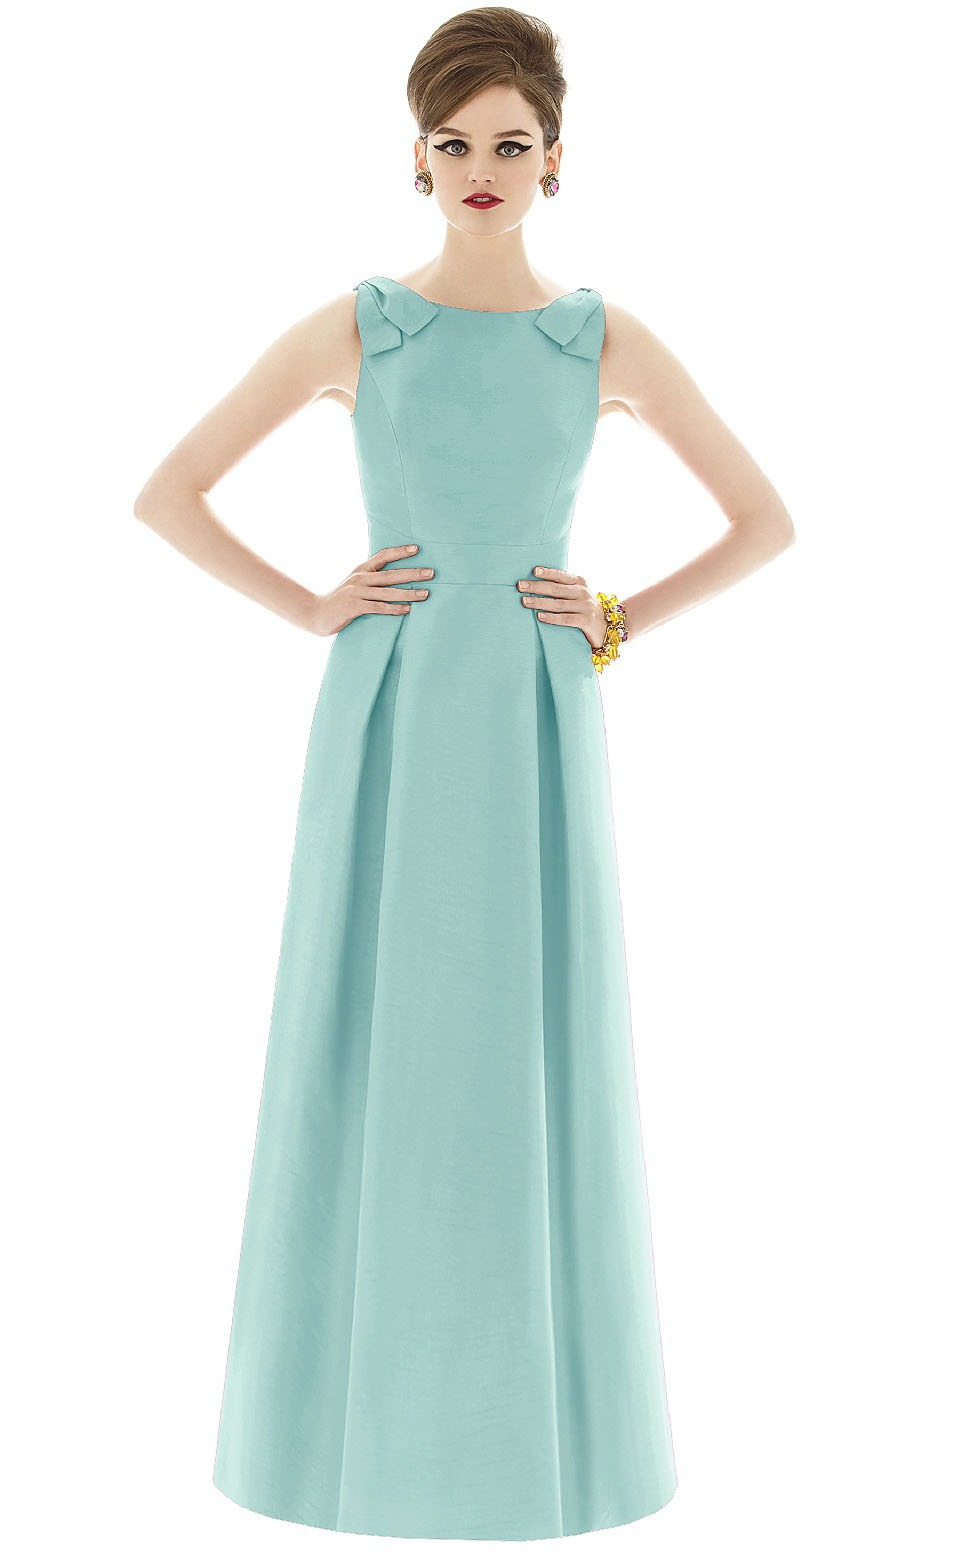 A-line Satin Sleeveless Natural Floor-length Bridesmaid Dresses